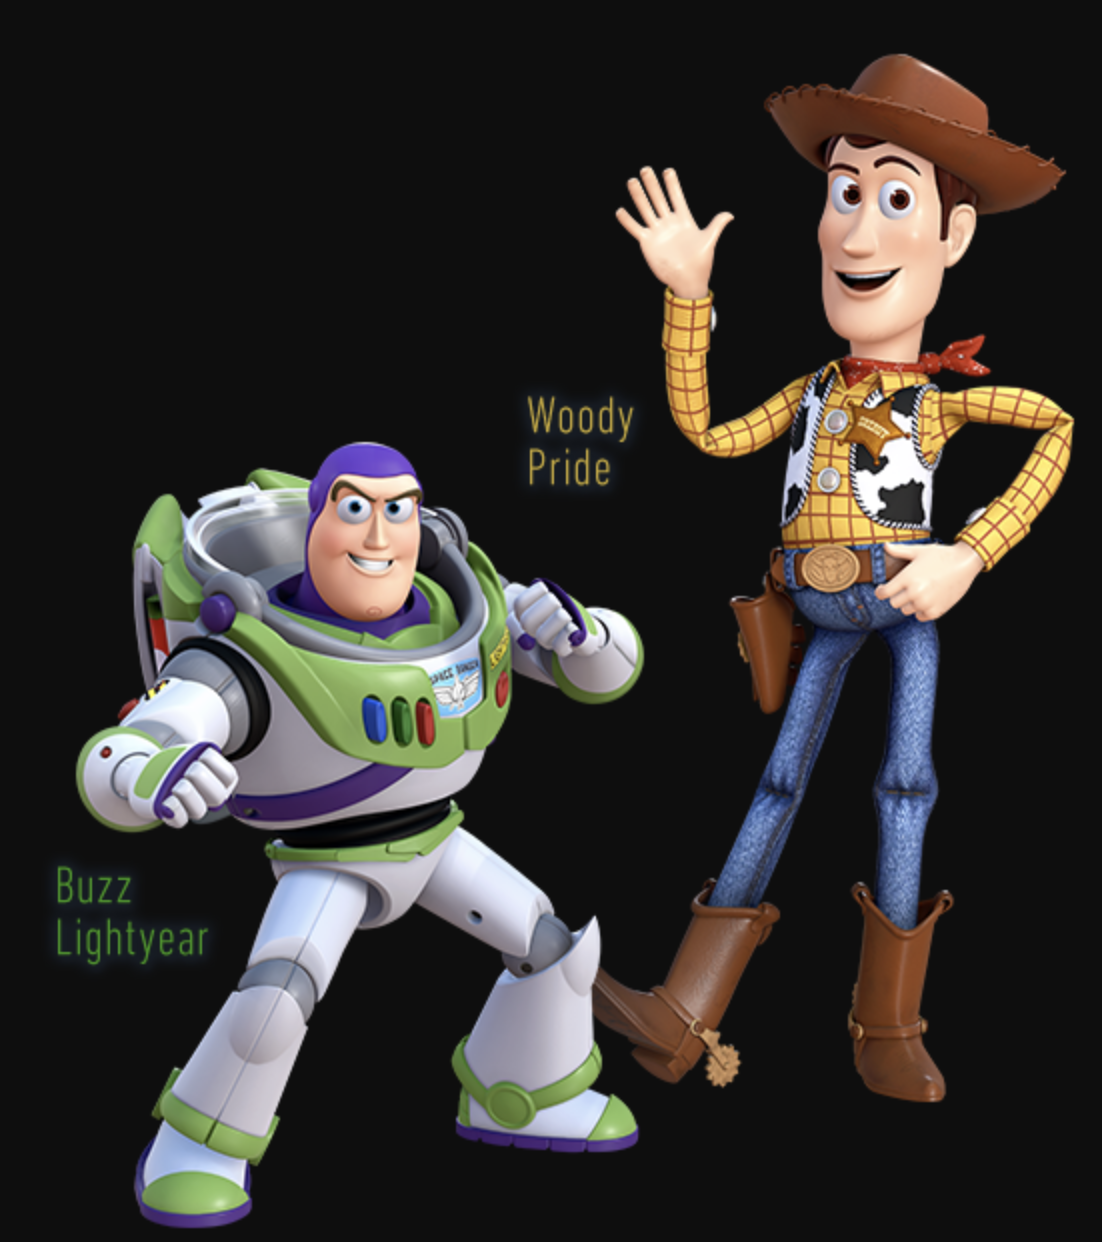 Excuse Me But There Is Something I Need To Know Ahem Woodys Full Name Is Woody Pride Wwwwwhhhhaaat Kingdom Hearts Woody Pride Toy Story